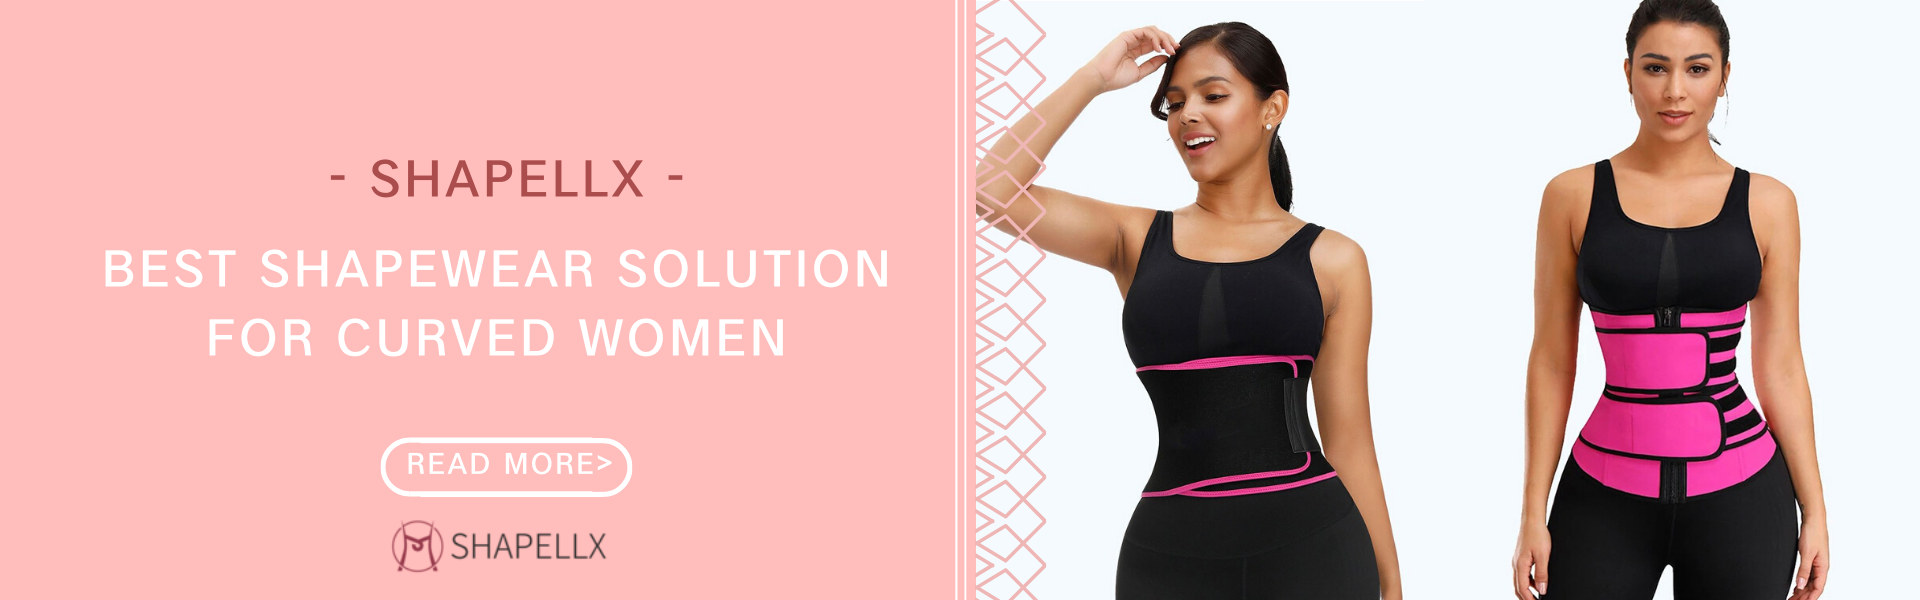 Best Shapewear Solution for Curved Women